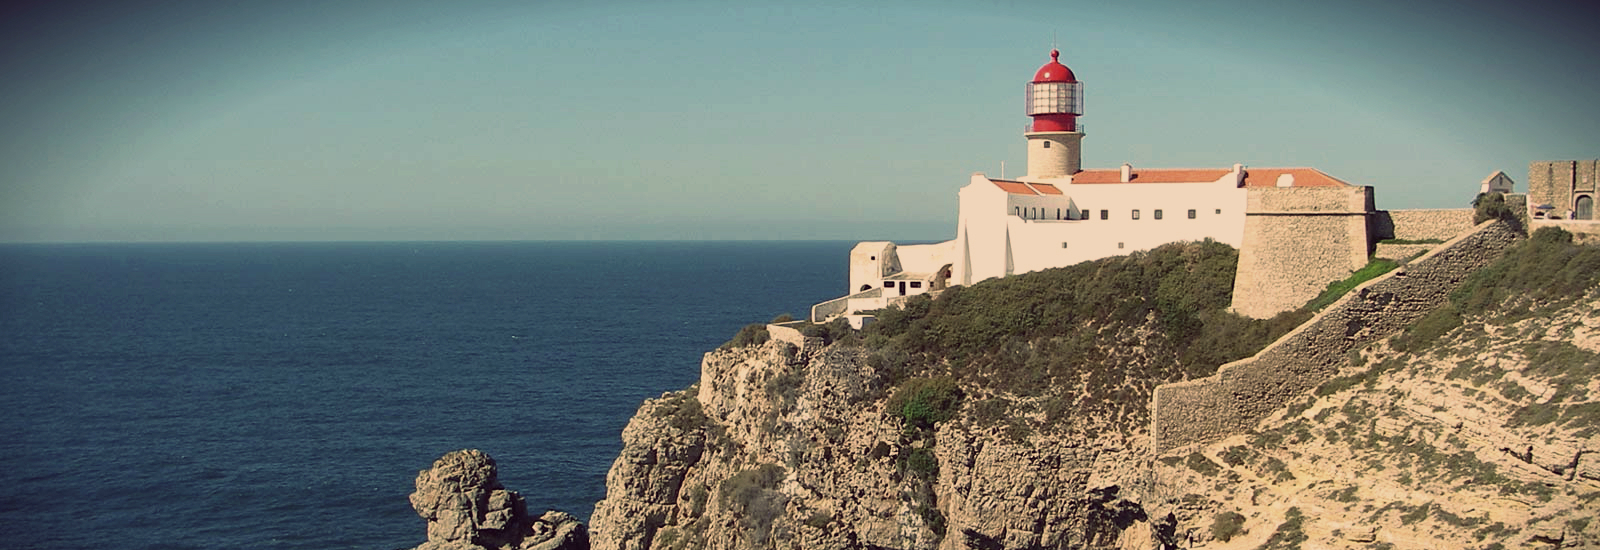 sagres s History the most southerly community in portugal and the most south-westerly in continental europe is at sagres, overlooking the bay of sagres, which is itself flanked by two headlands: atalaia point and sagres point.